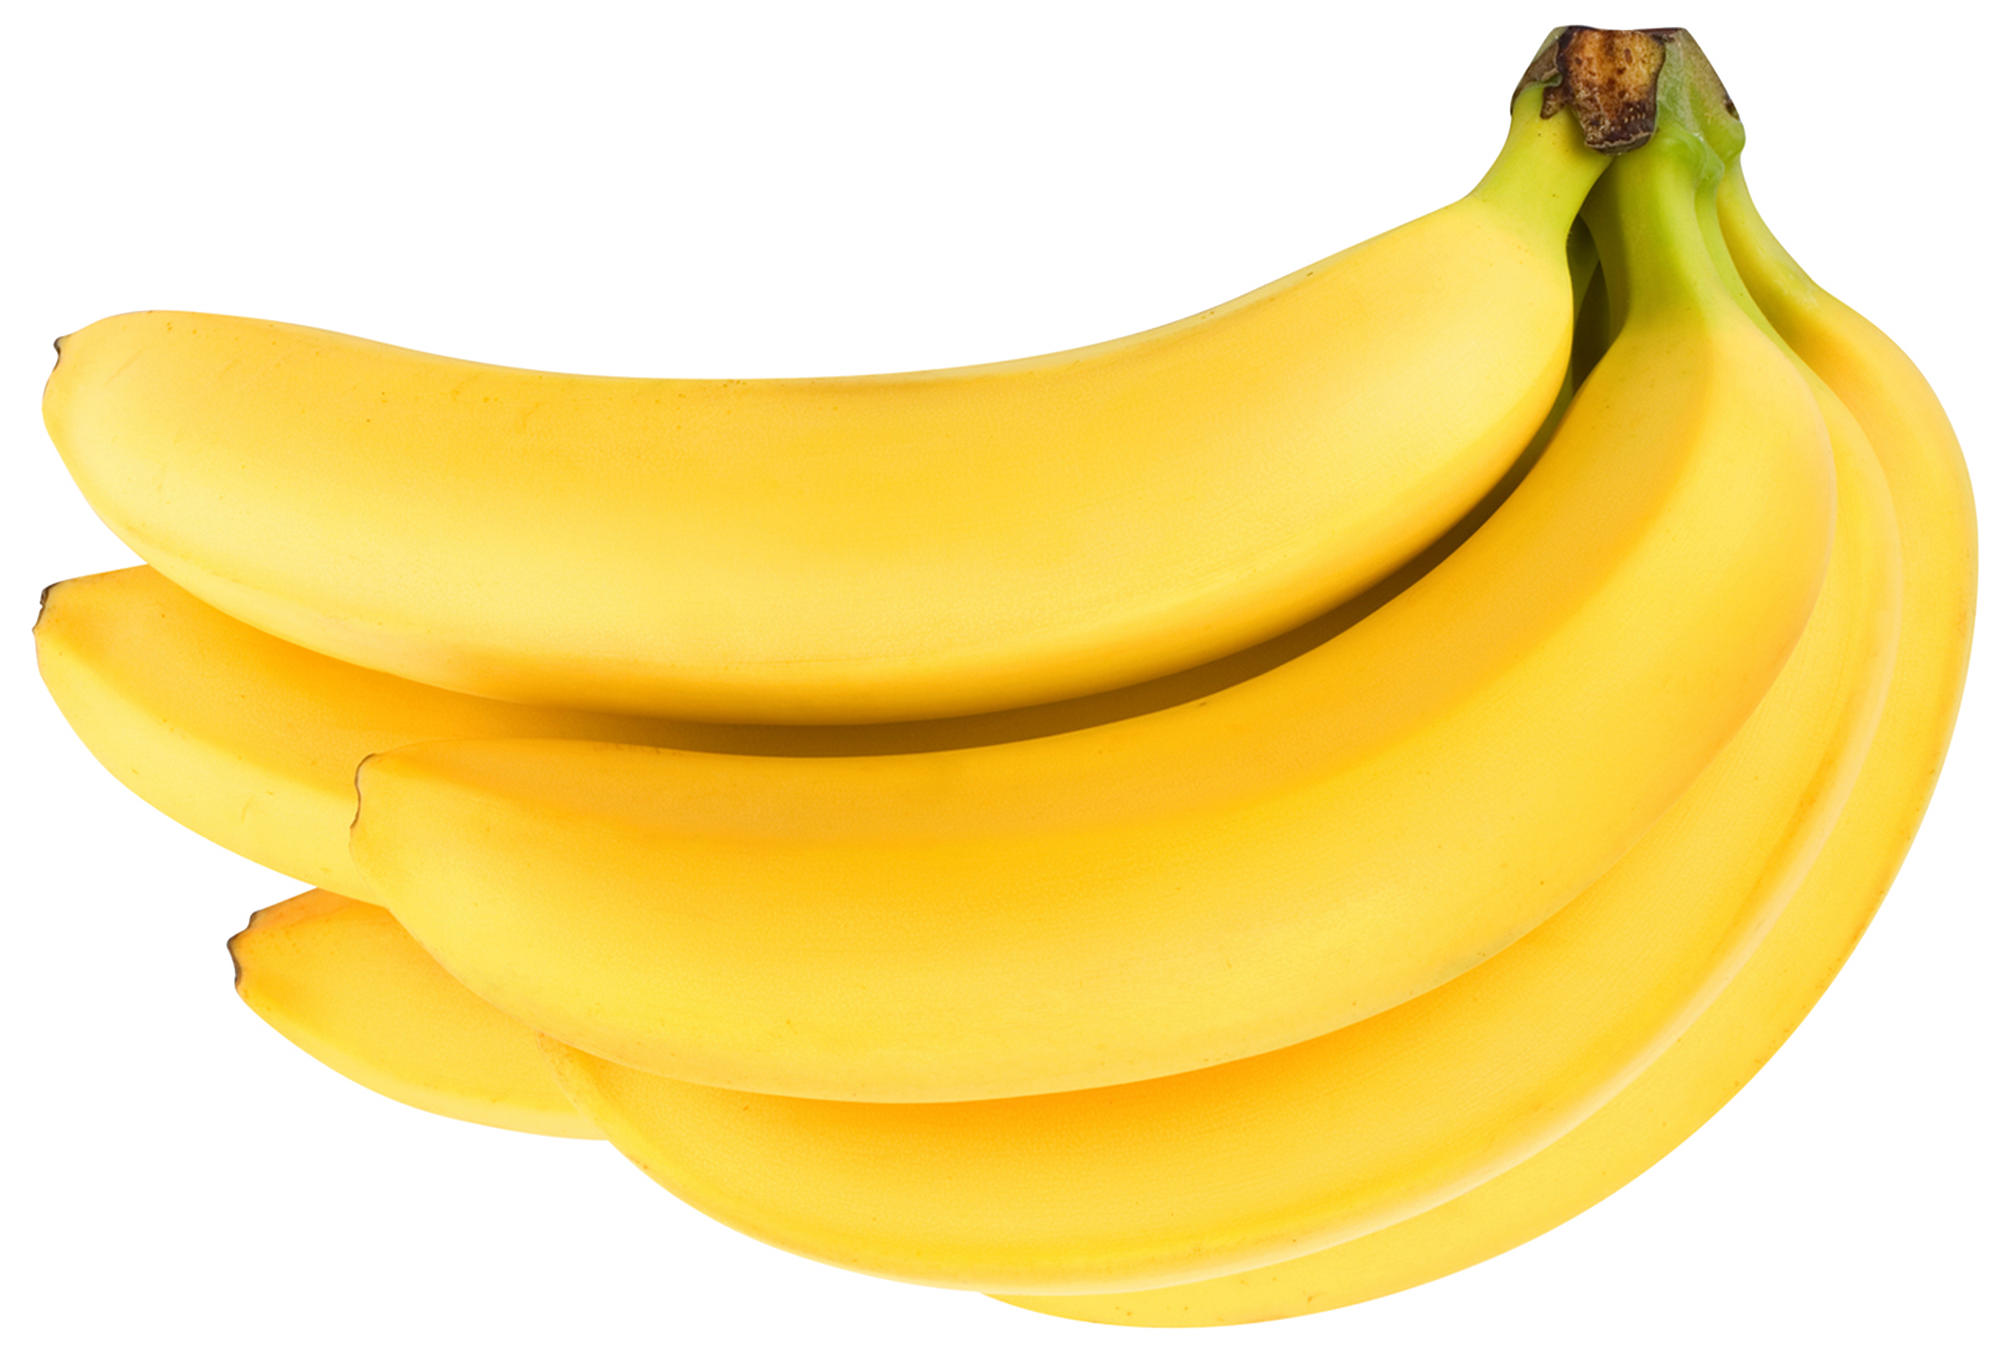 Large bananas png gallery. Clipart fruit yellow fruit